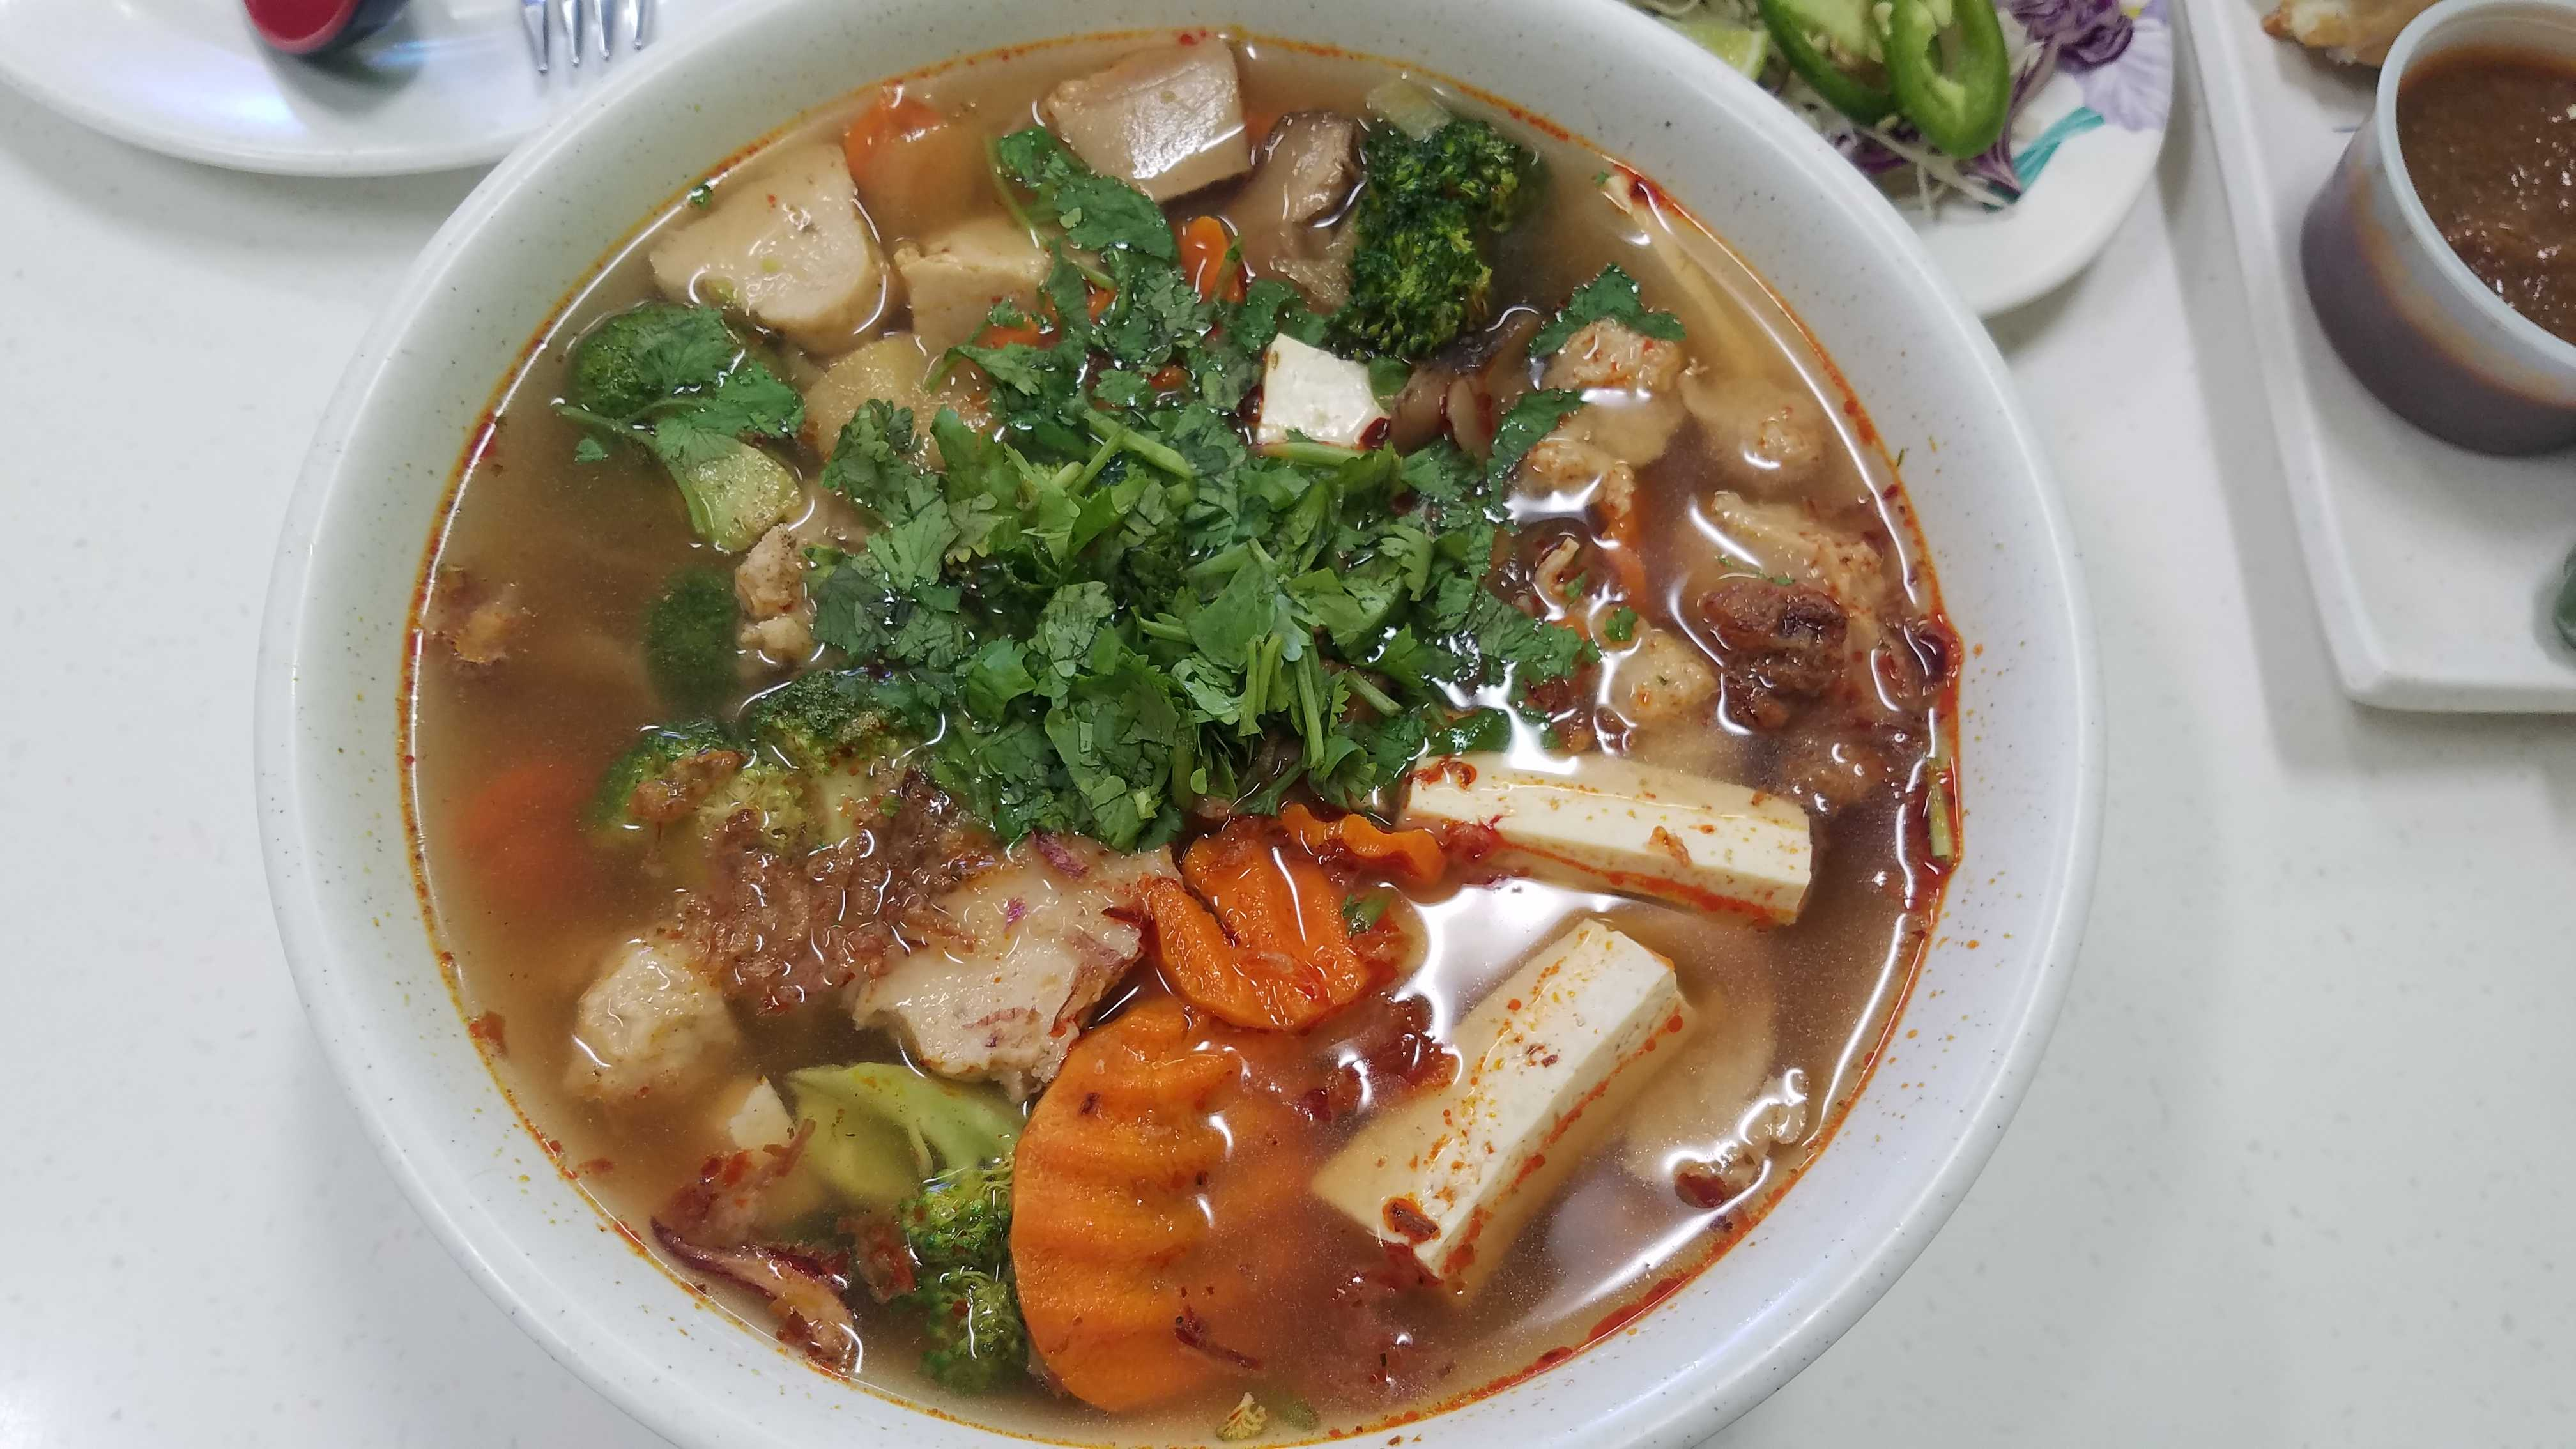 The Spicy Soup from Vinh Loi Tofu. Photo credit: Christine Martinez